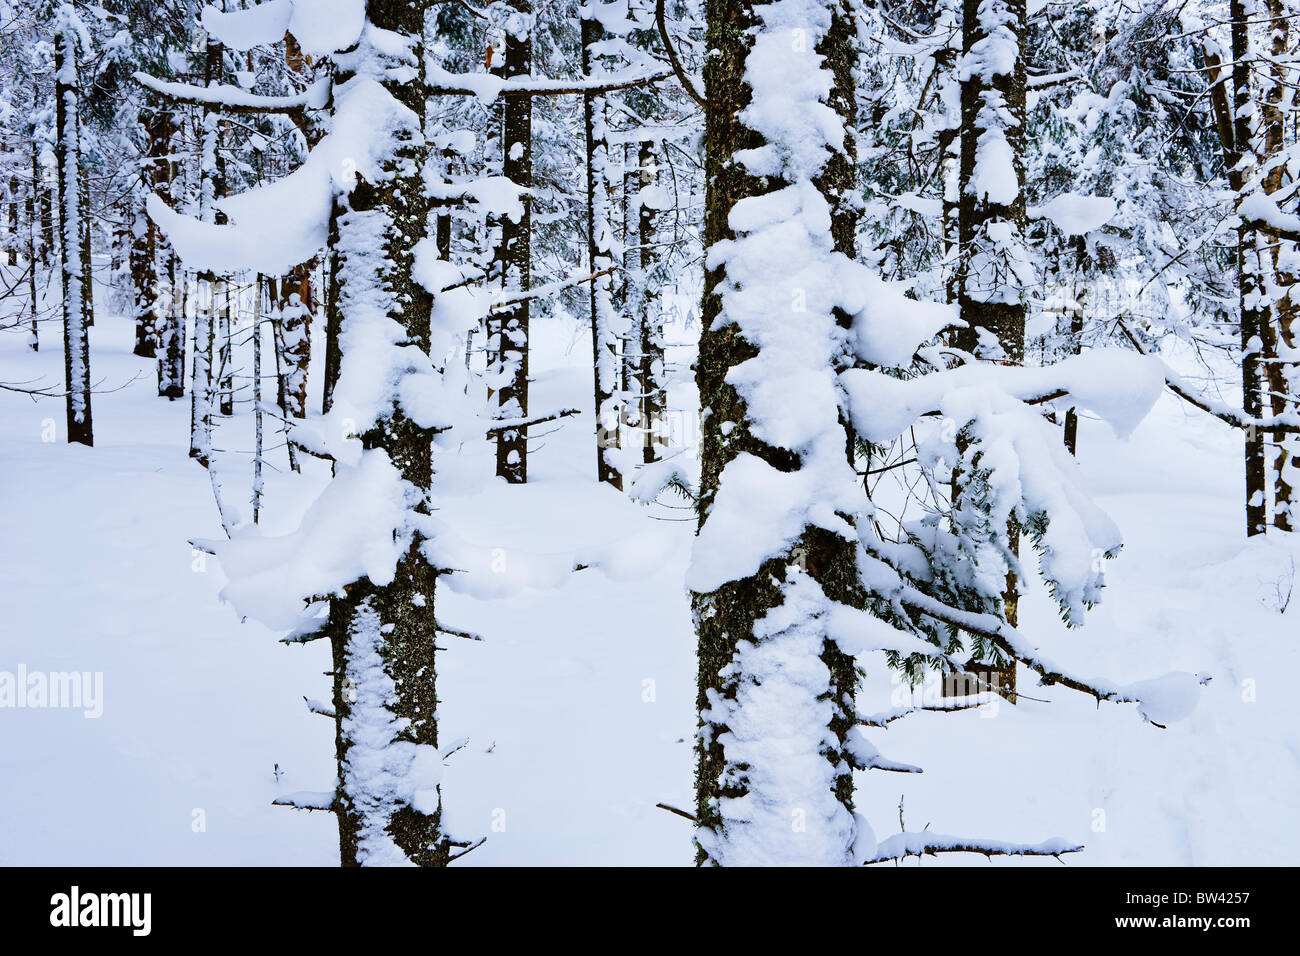 Snow-covered on coniferous forest, Saint-Adrien-d'Irlande, Quebec - Stock Image